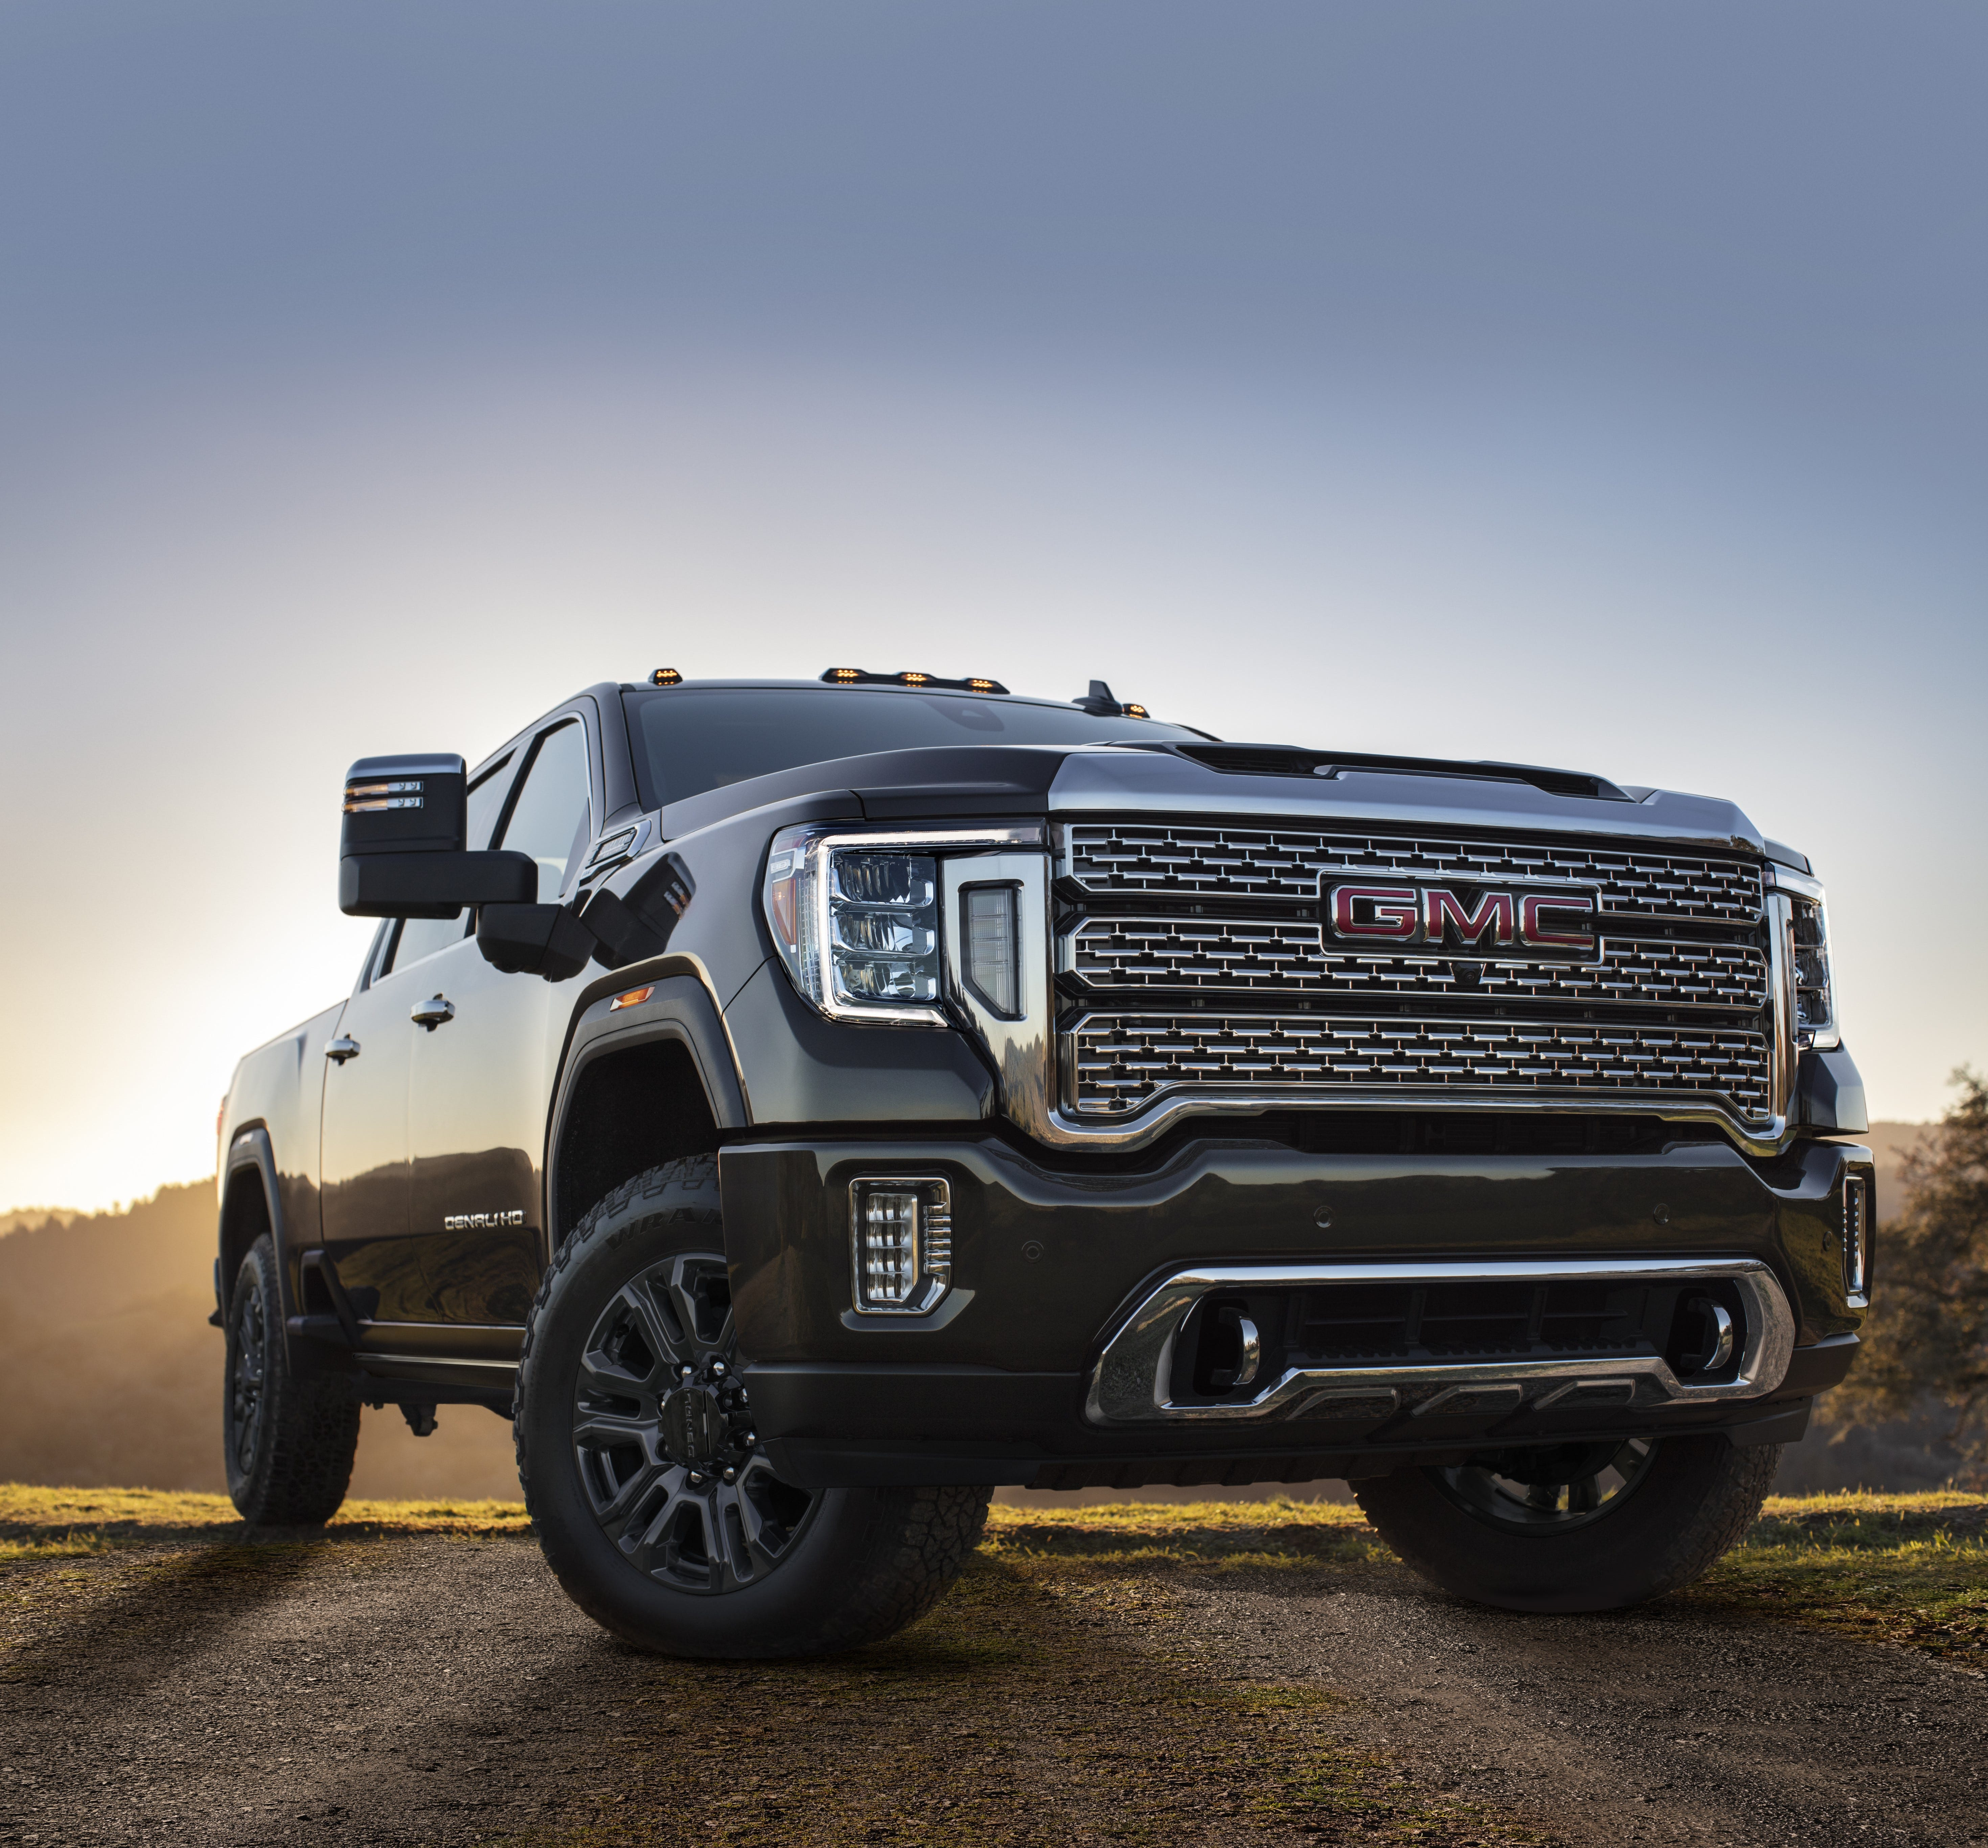 Gmc S 2021 Sierra Pickup To Have New Technology Price Adjustment